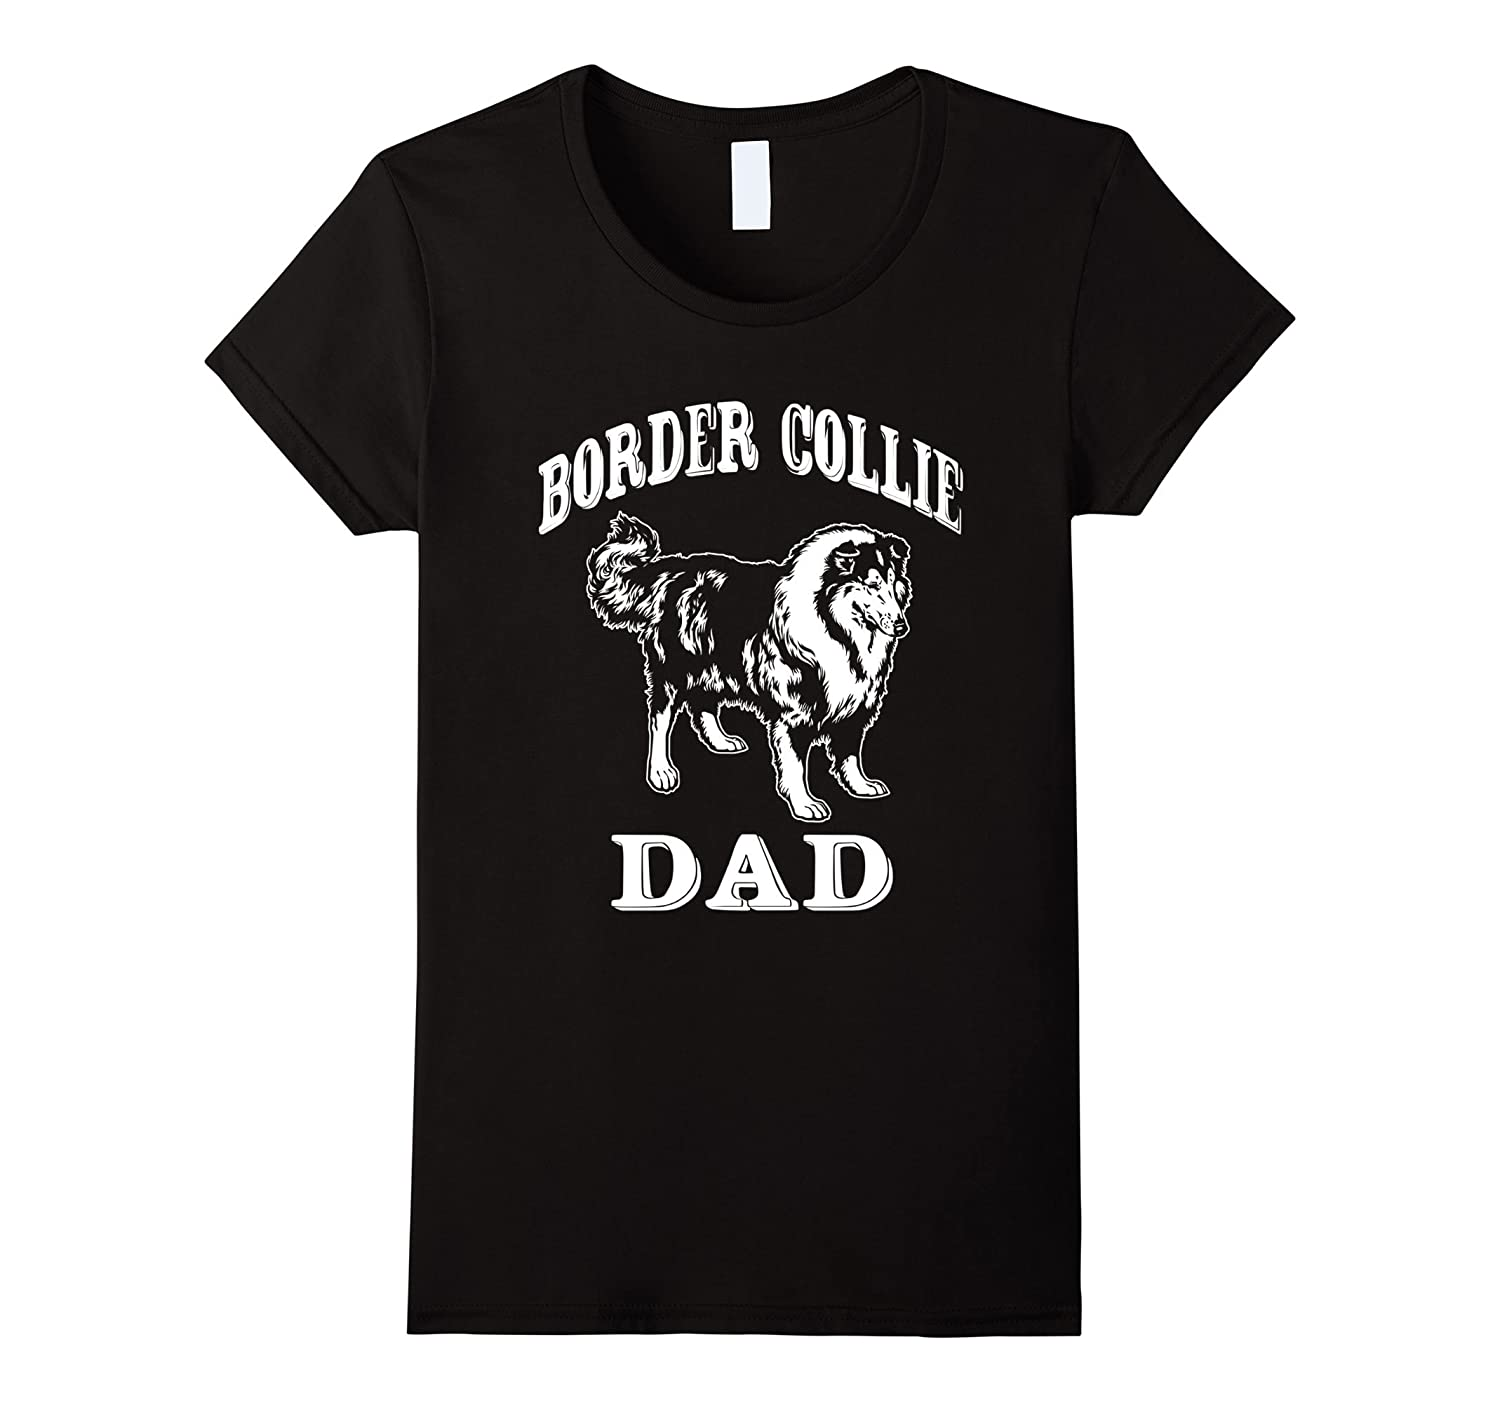 Border Collie Dad Shirt, Dog Lover T shirt, Funny Gift Shirt